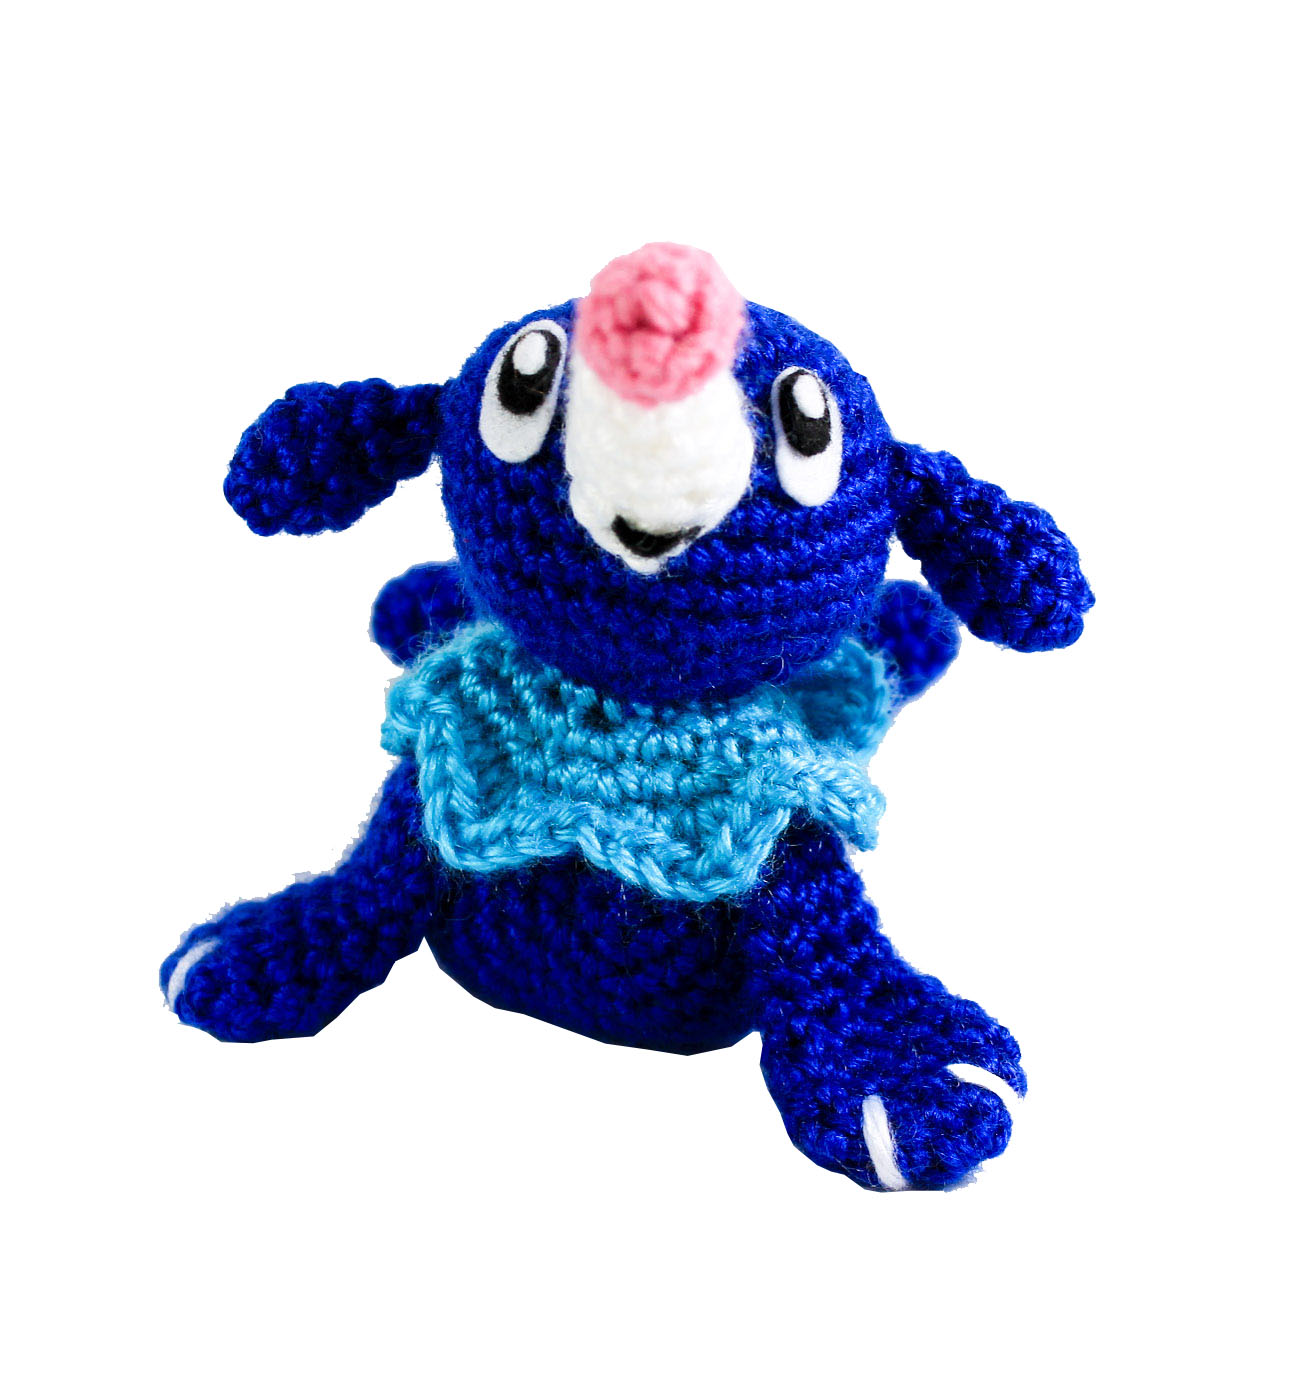 Crochet Popplio Pattern